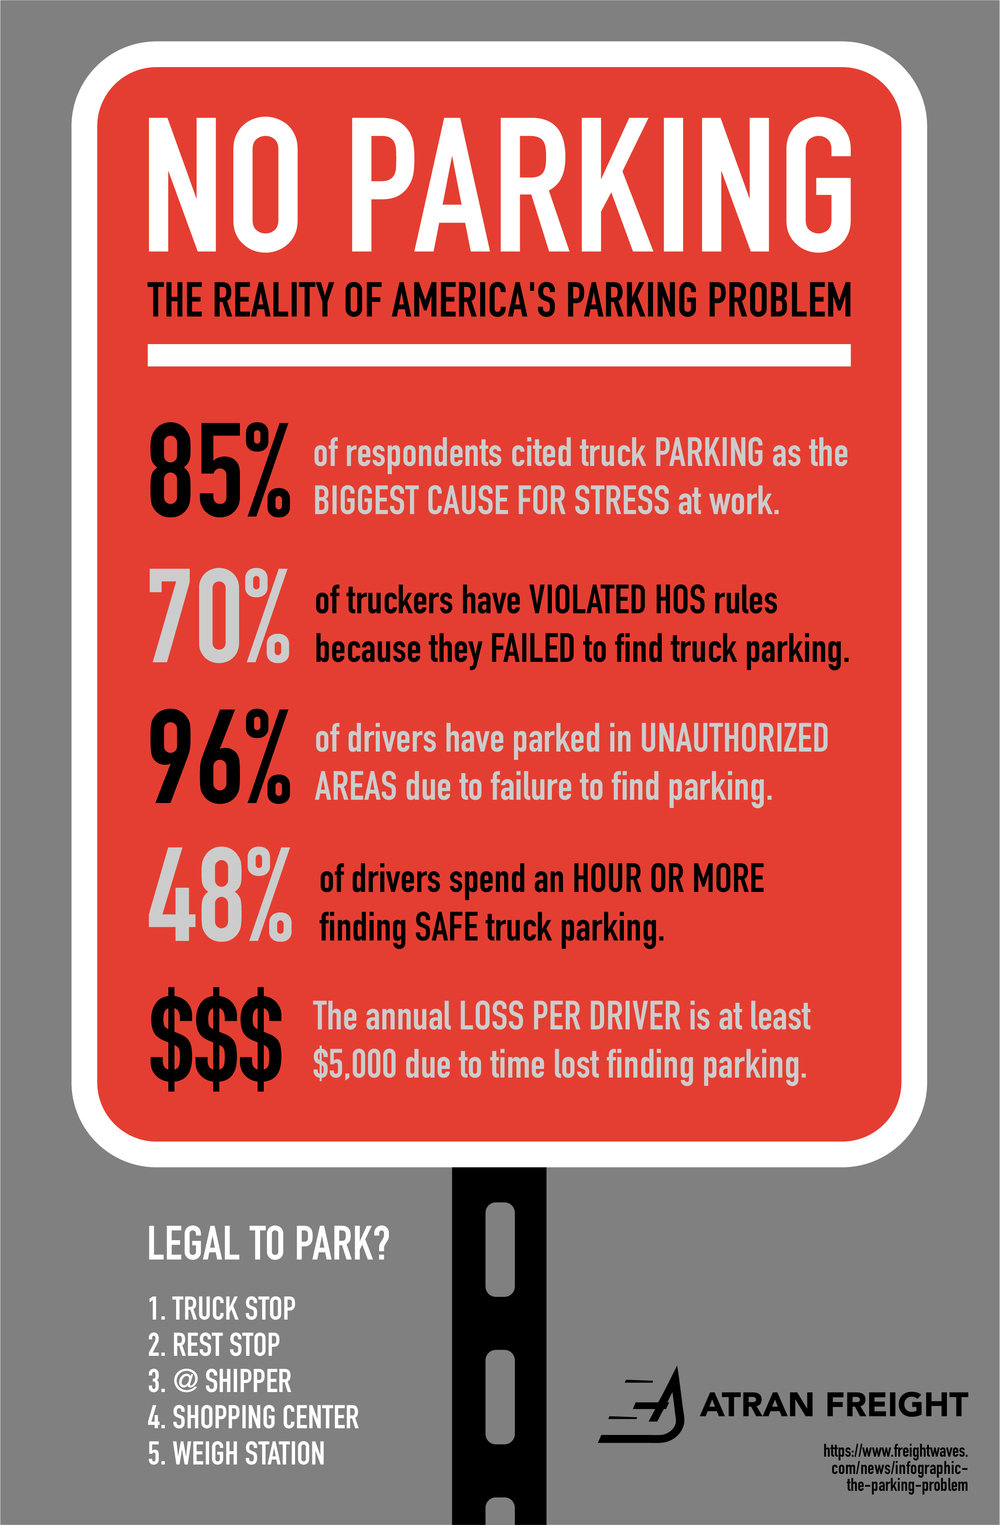 The Reality of America's Parking Problem